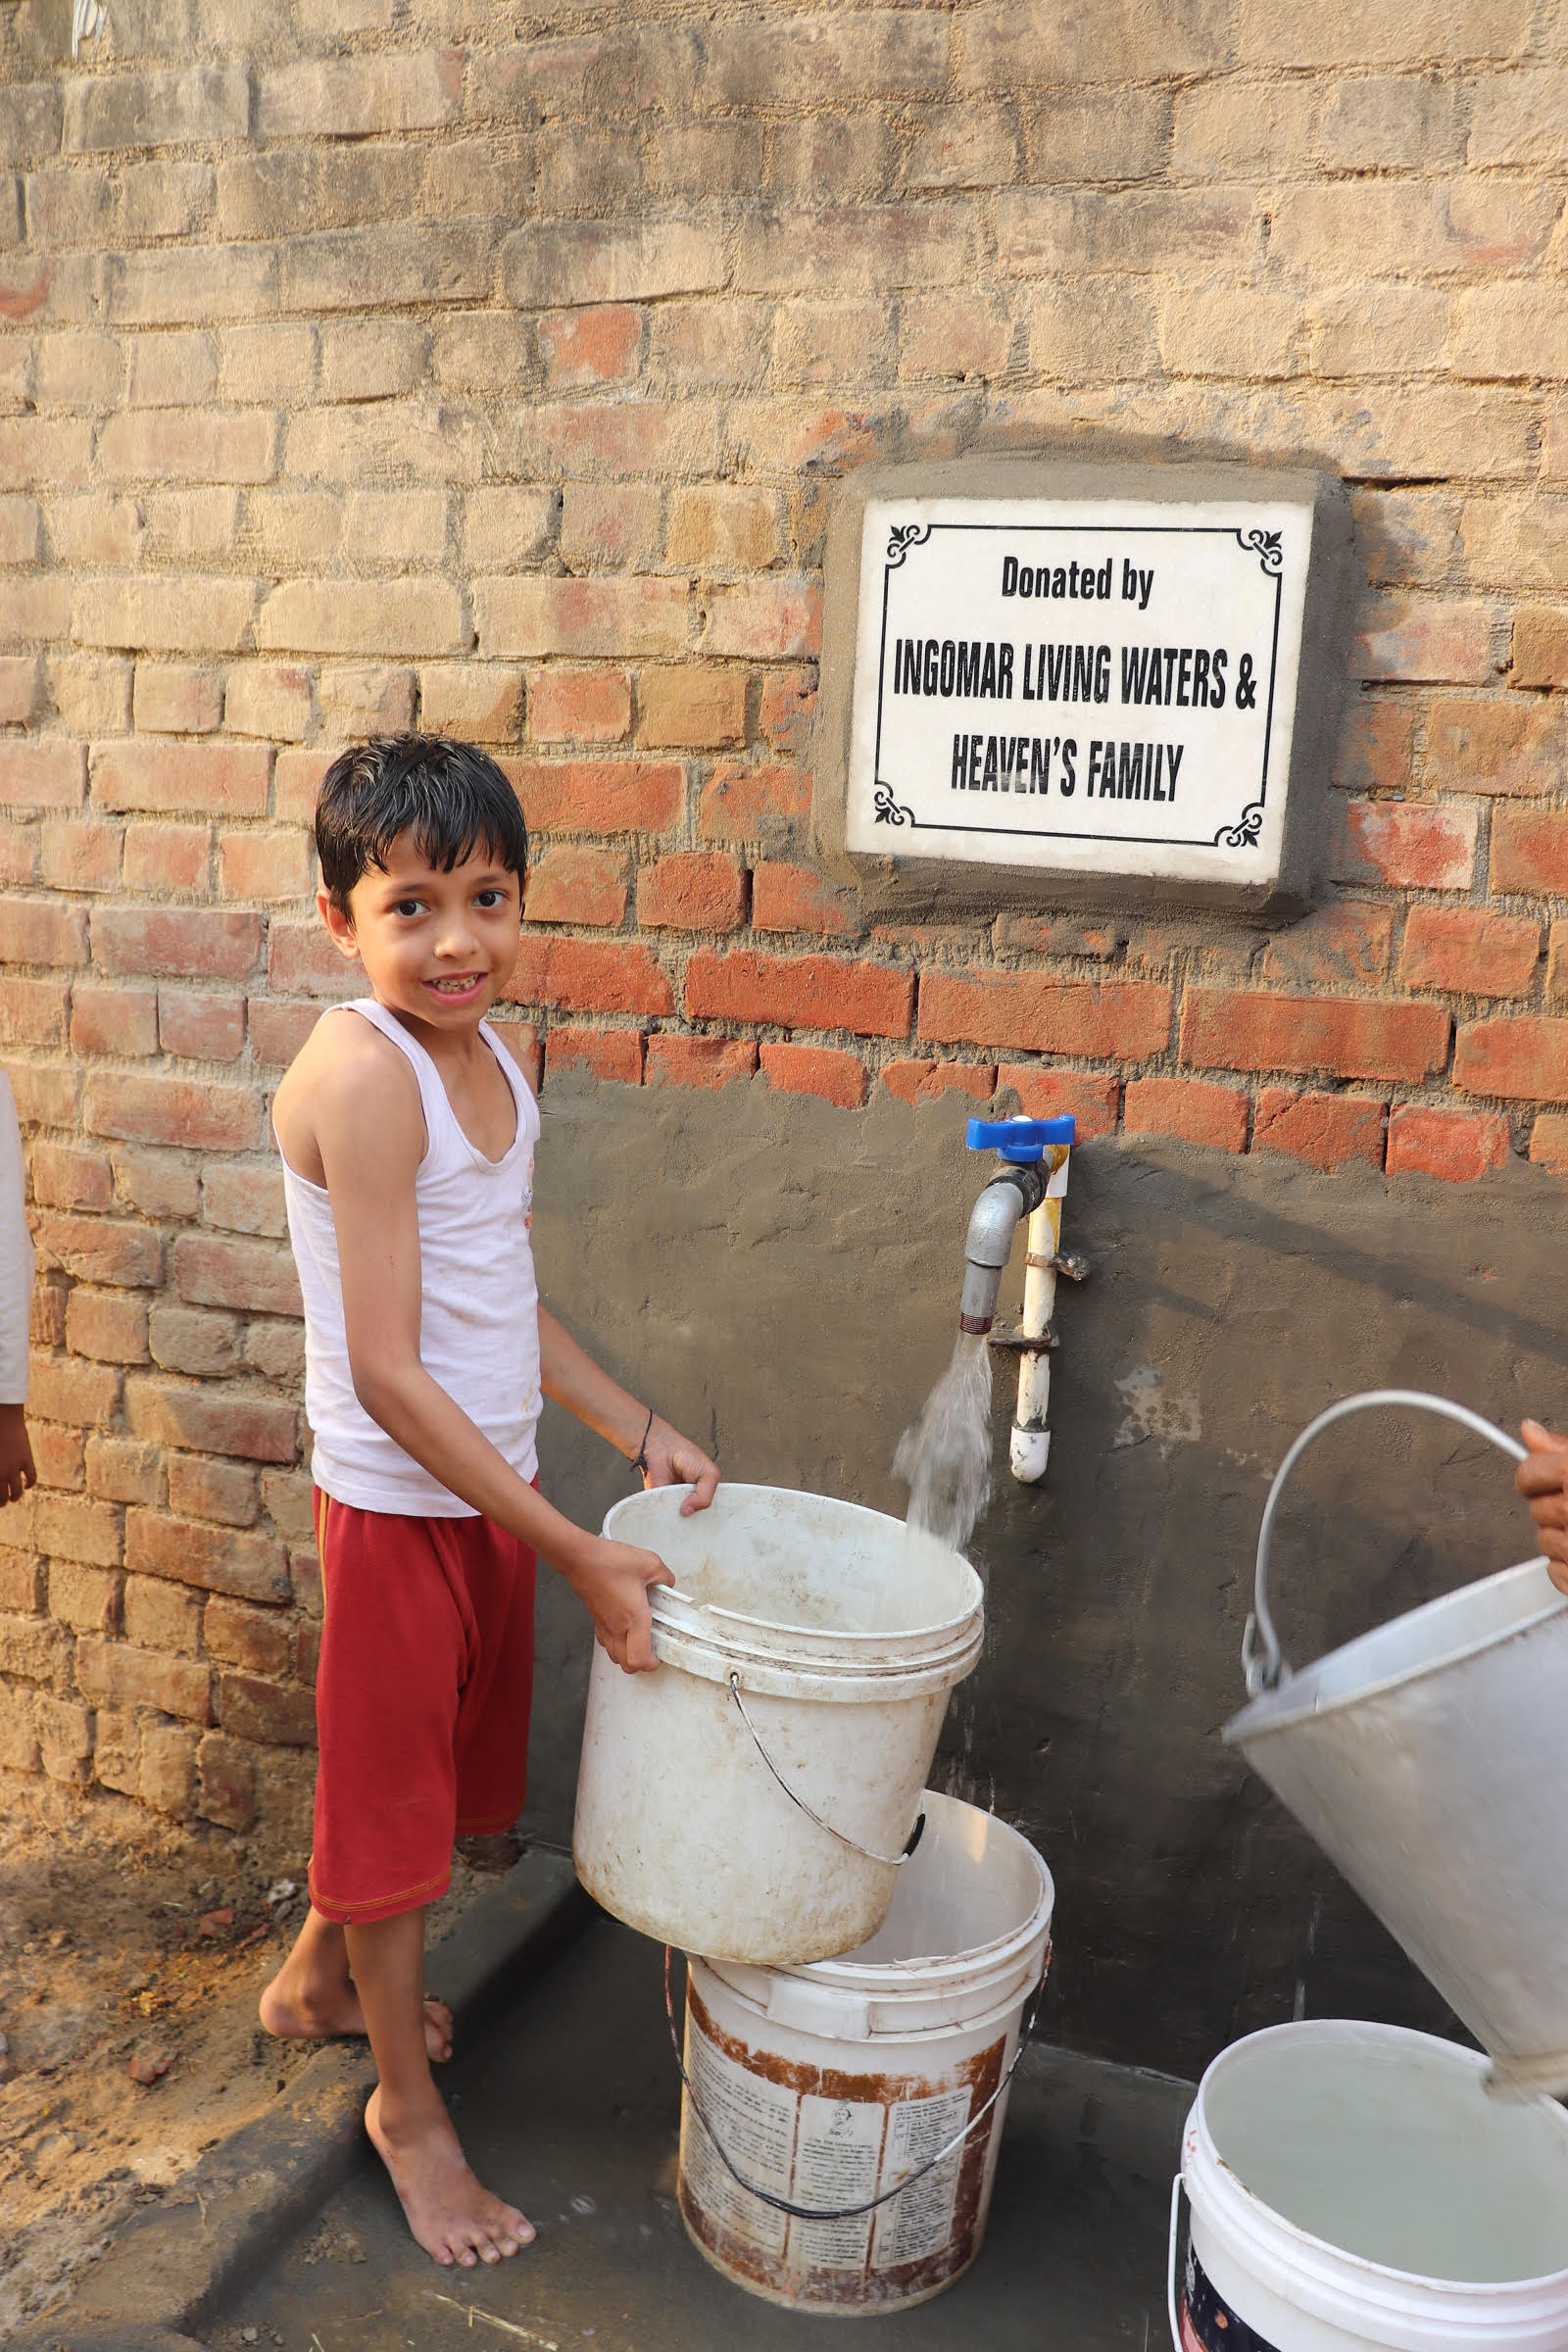 Image 4 Boy collecting water (Ishmaeil)